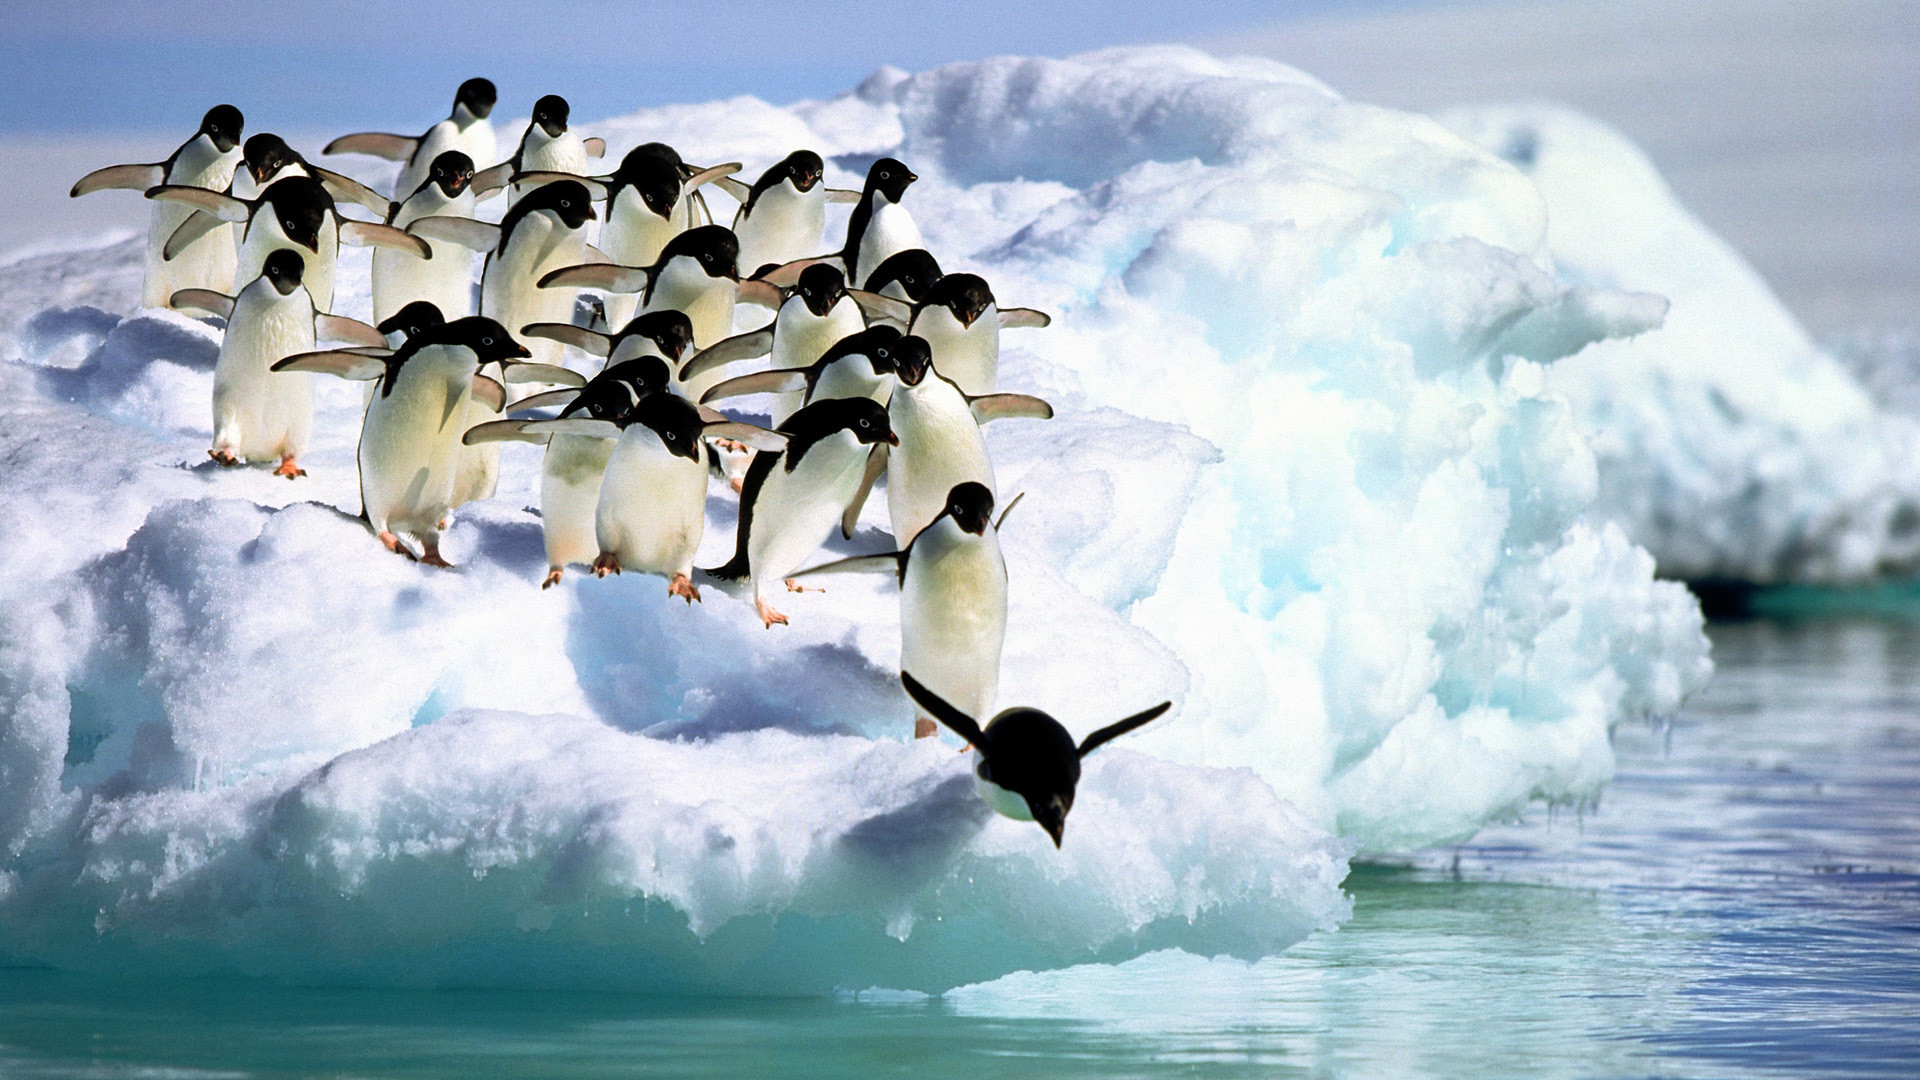 HD Penguins Wallpapers and Photos | HD Animals Wallpapers